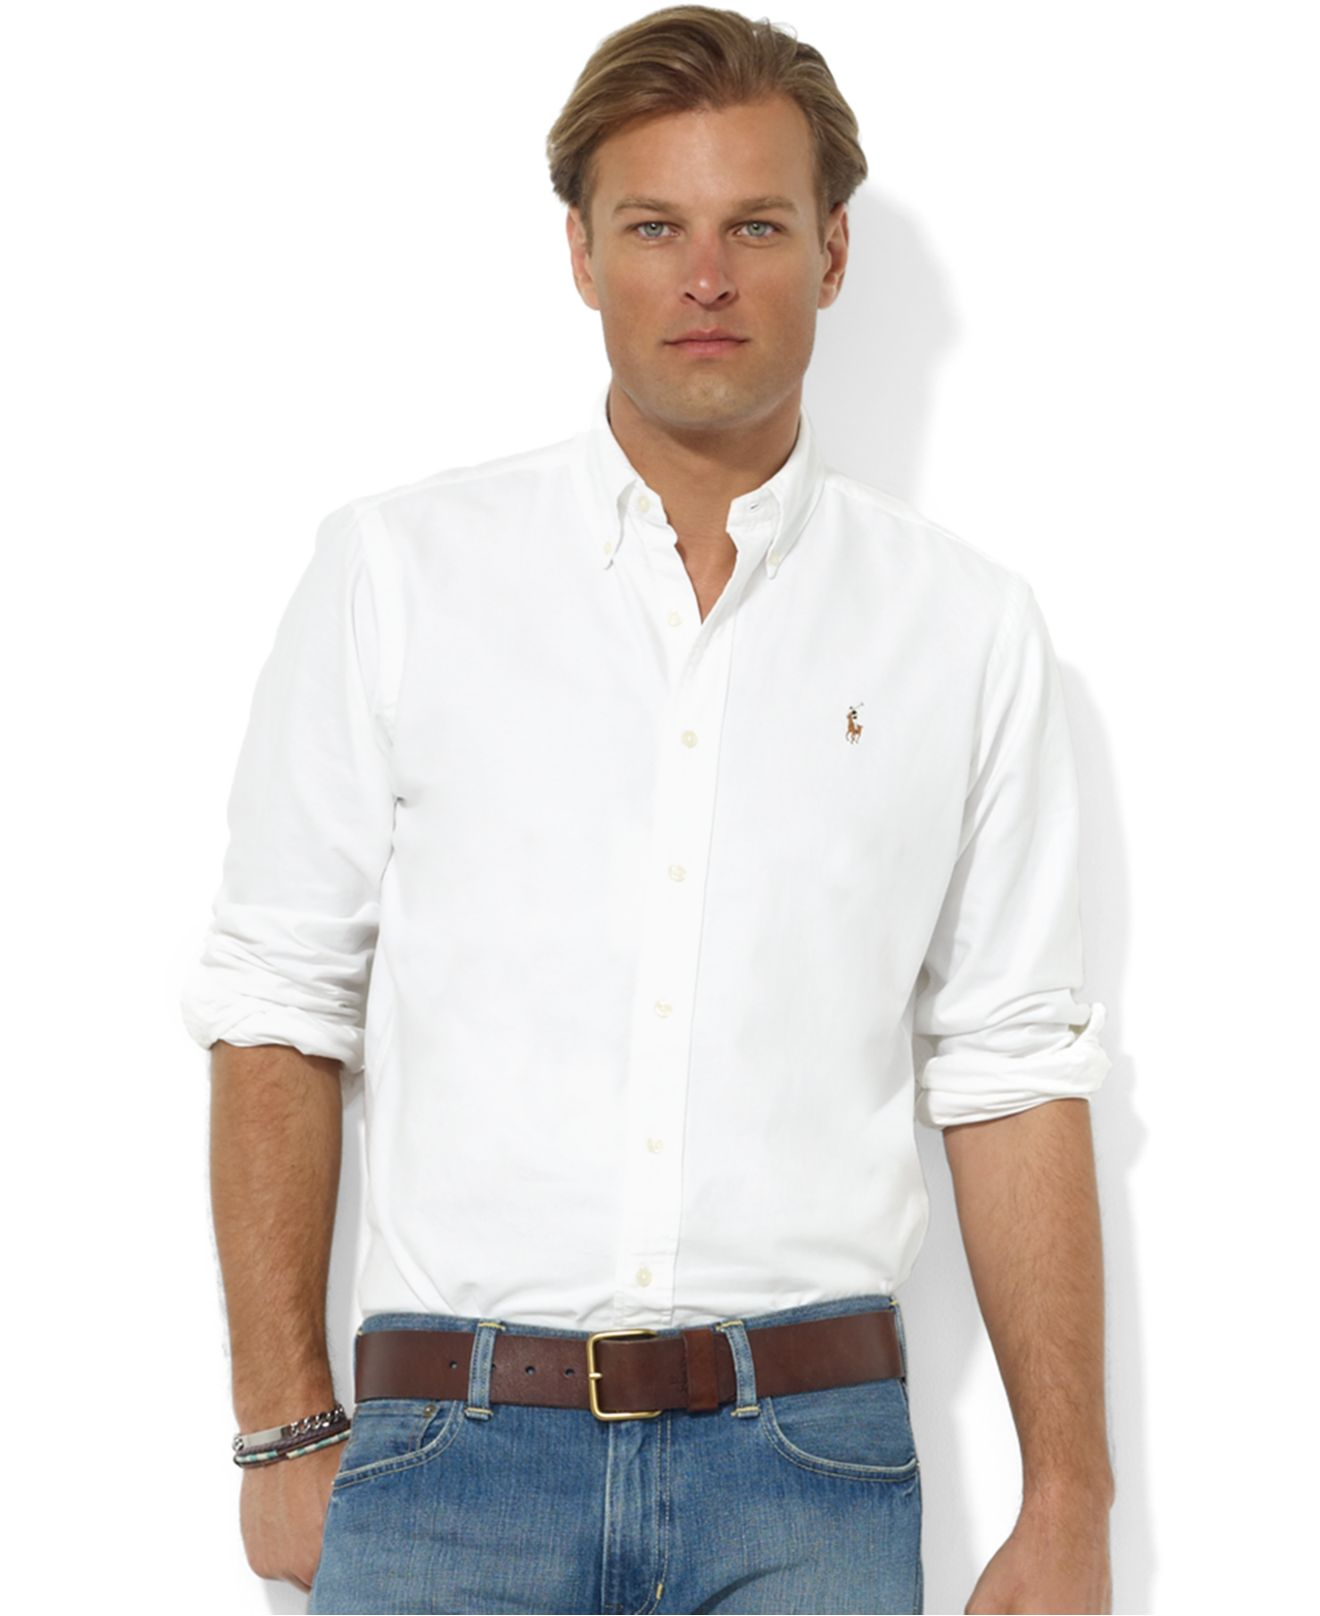 Lyst - Polo Ralph Lauren Core Classic Fit Oxford Shirt in White for Men b37ce380b69e